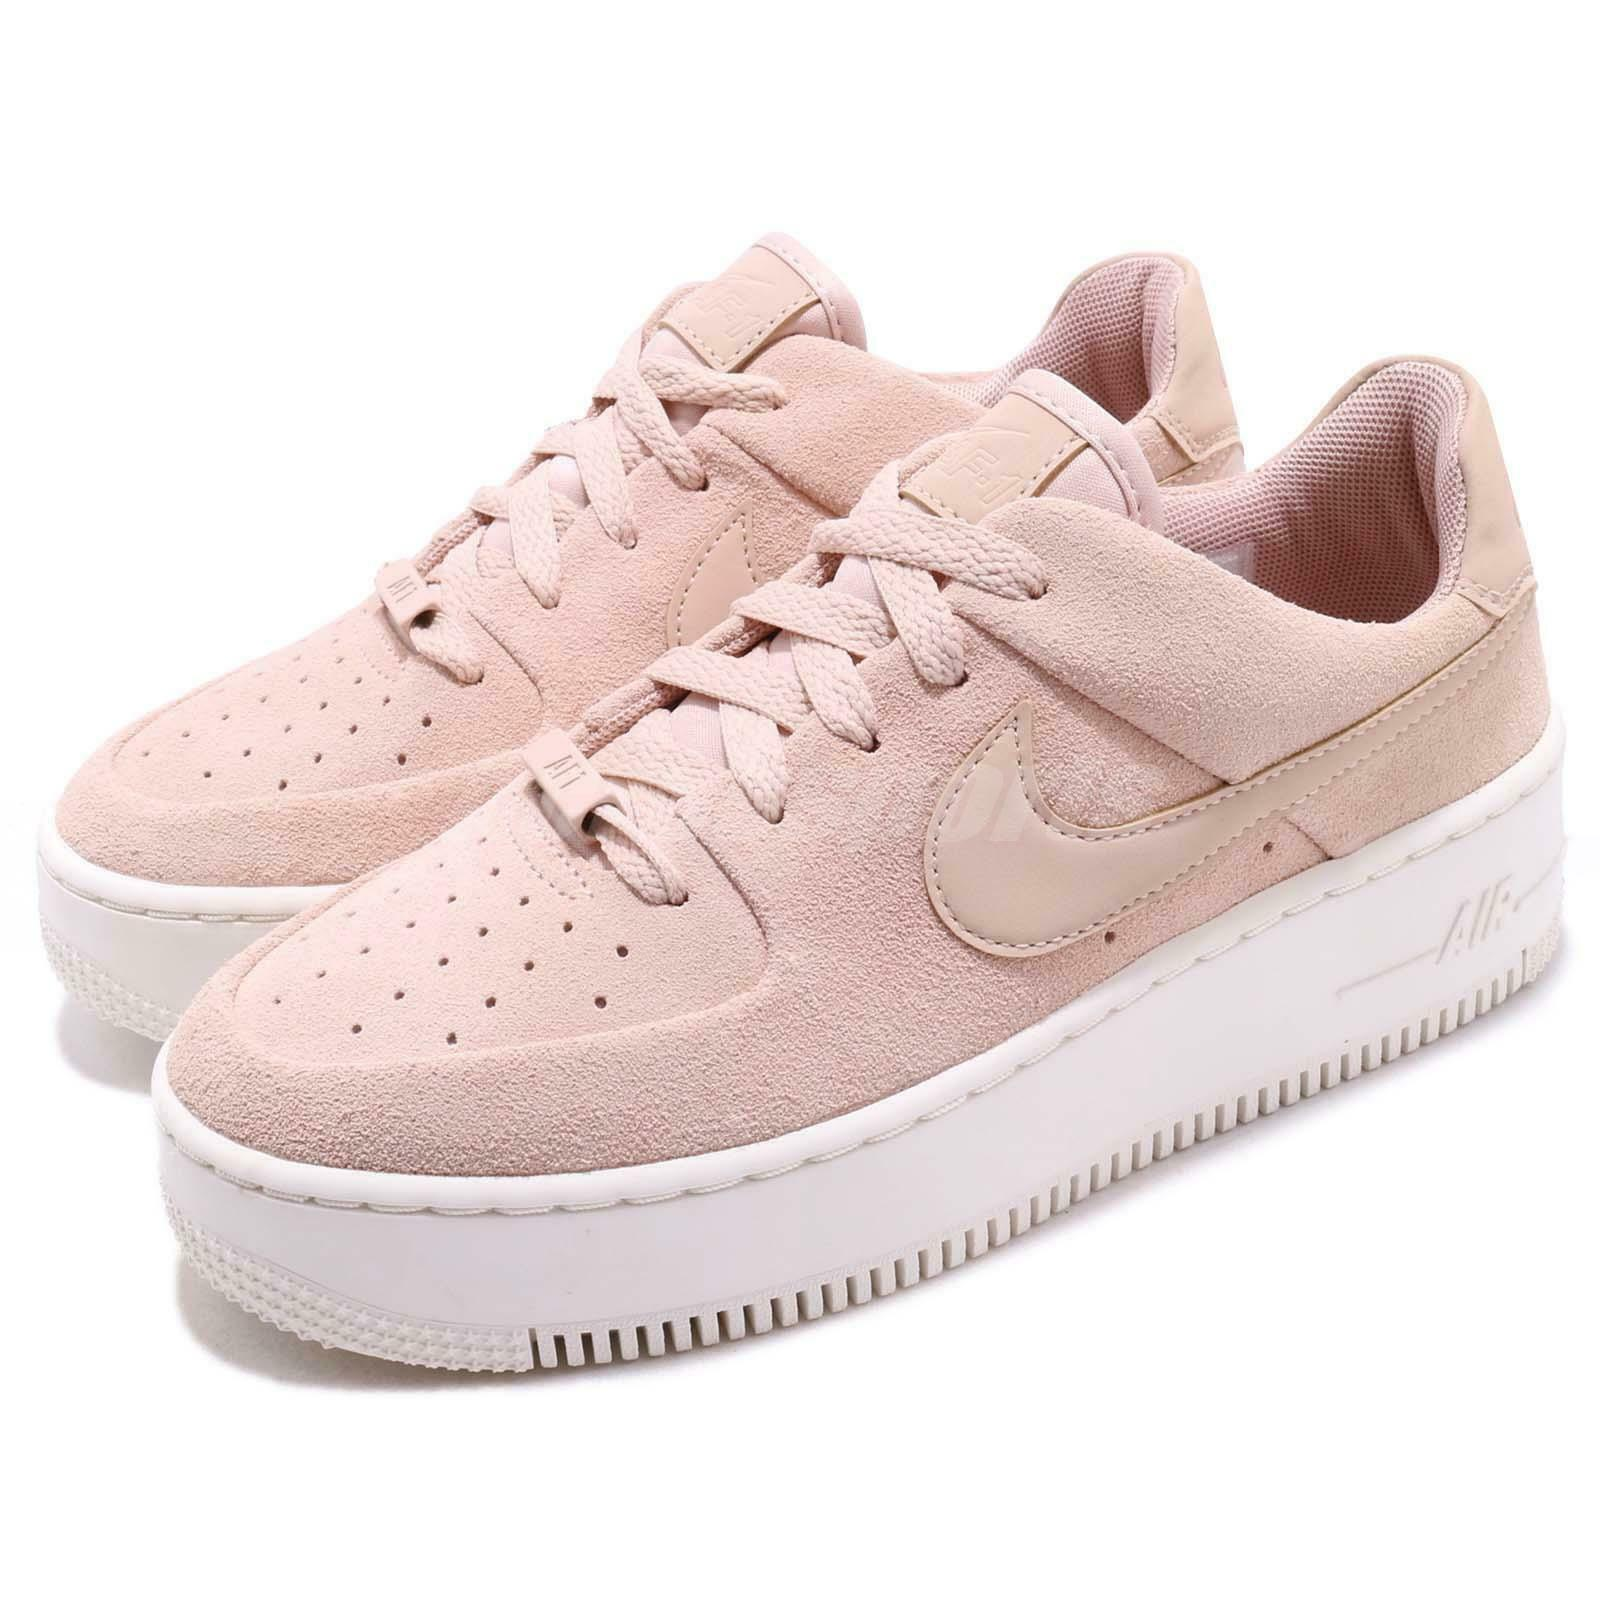 Nike Wmns Air Force 1 07 ESS LV8 Sage Sage Sage Low Rose Femmes Enfants grade-school baskets Pick 1 deb662